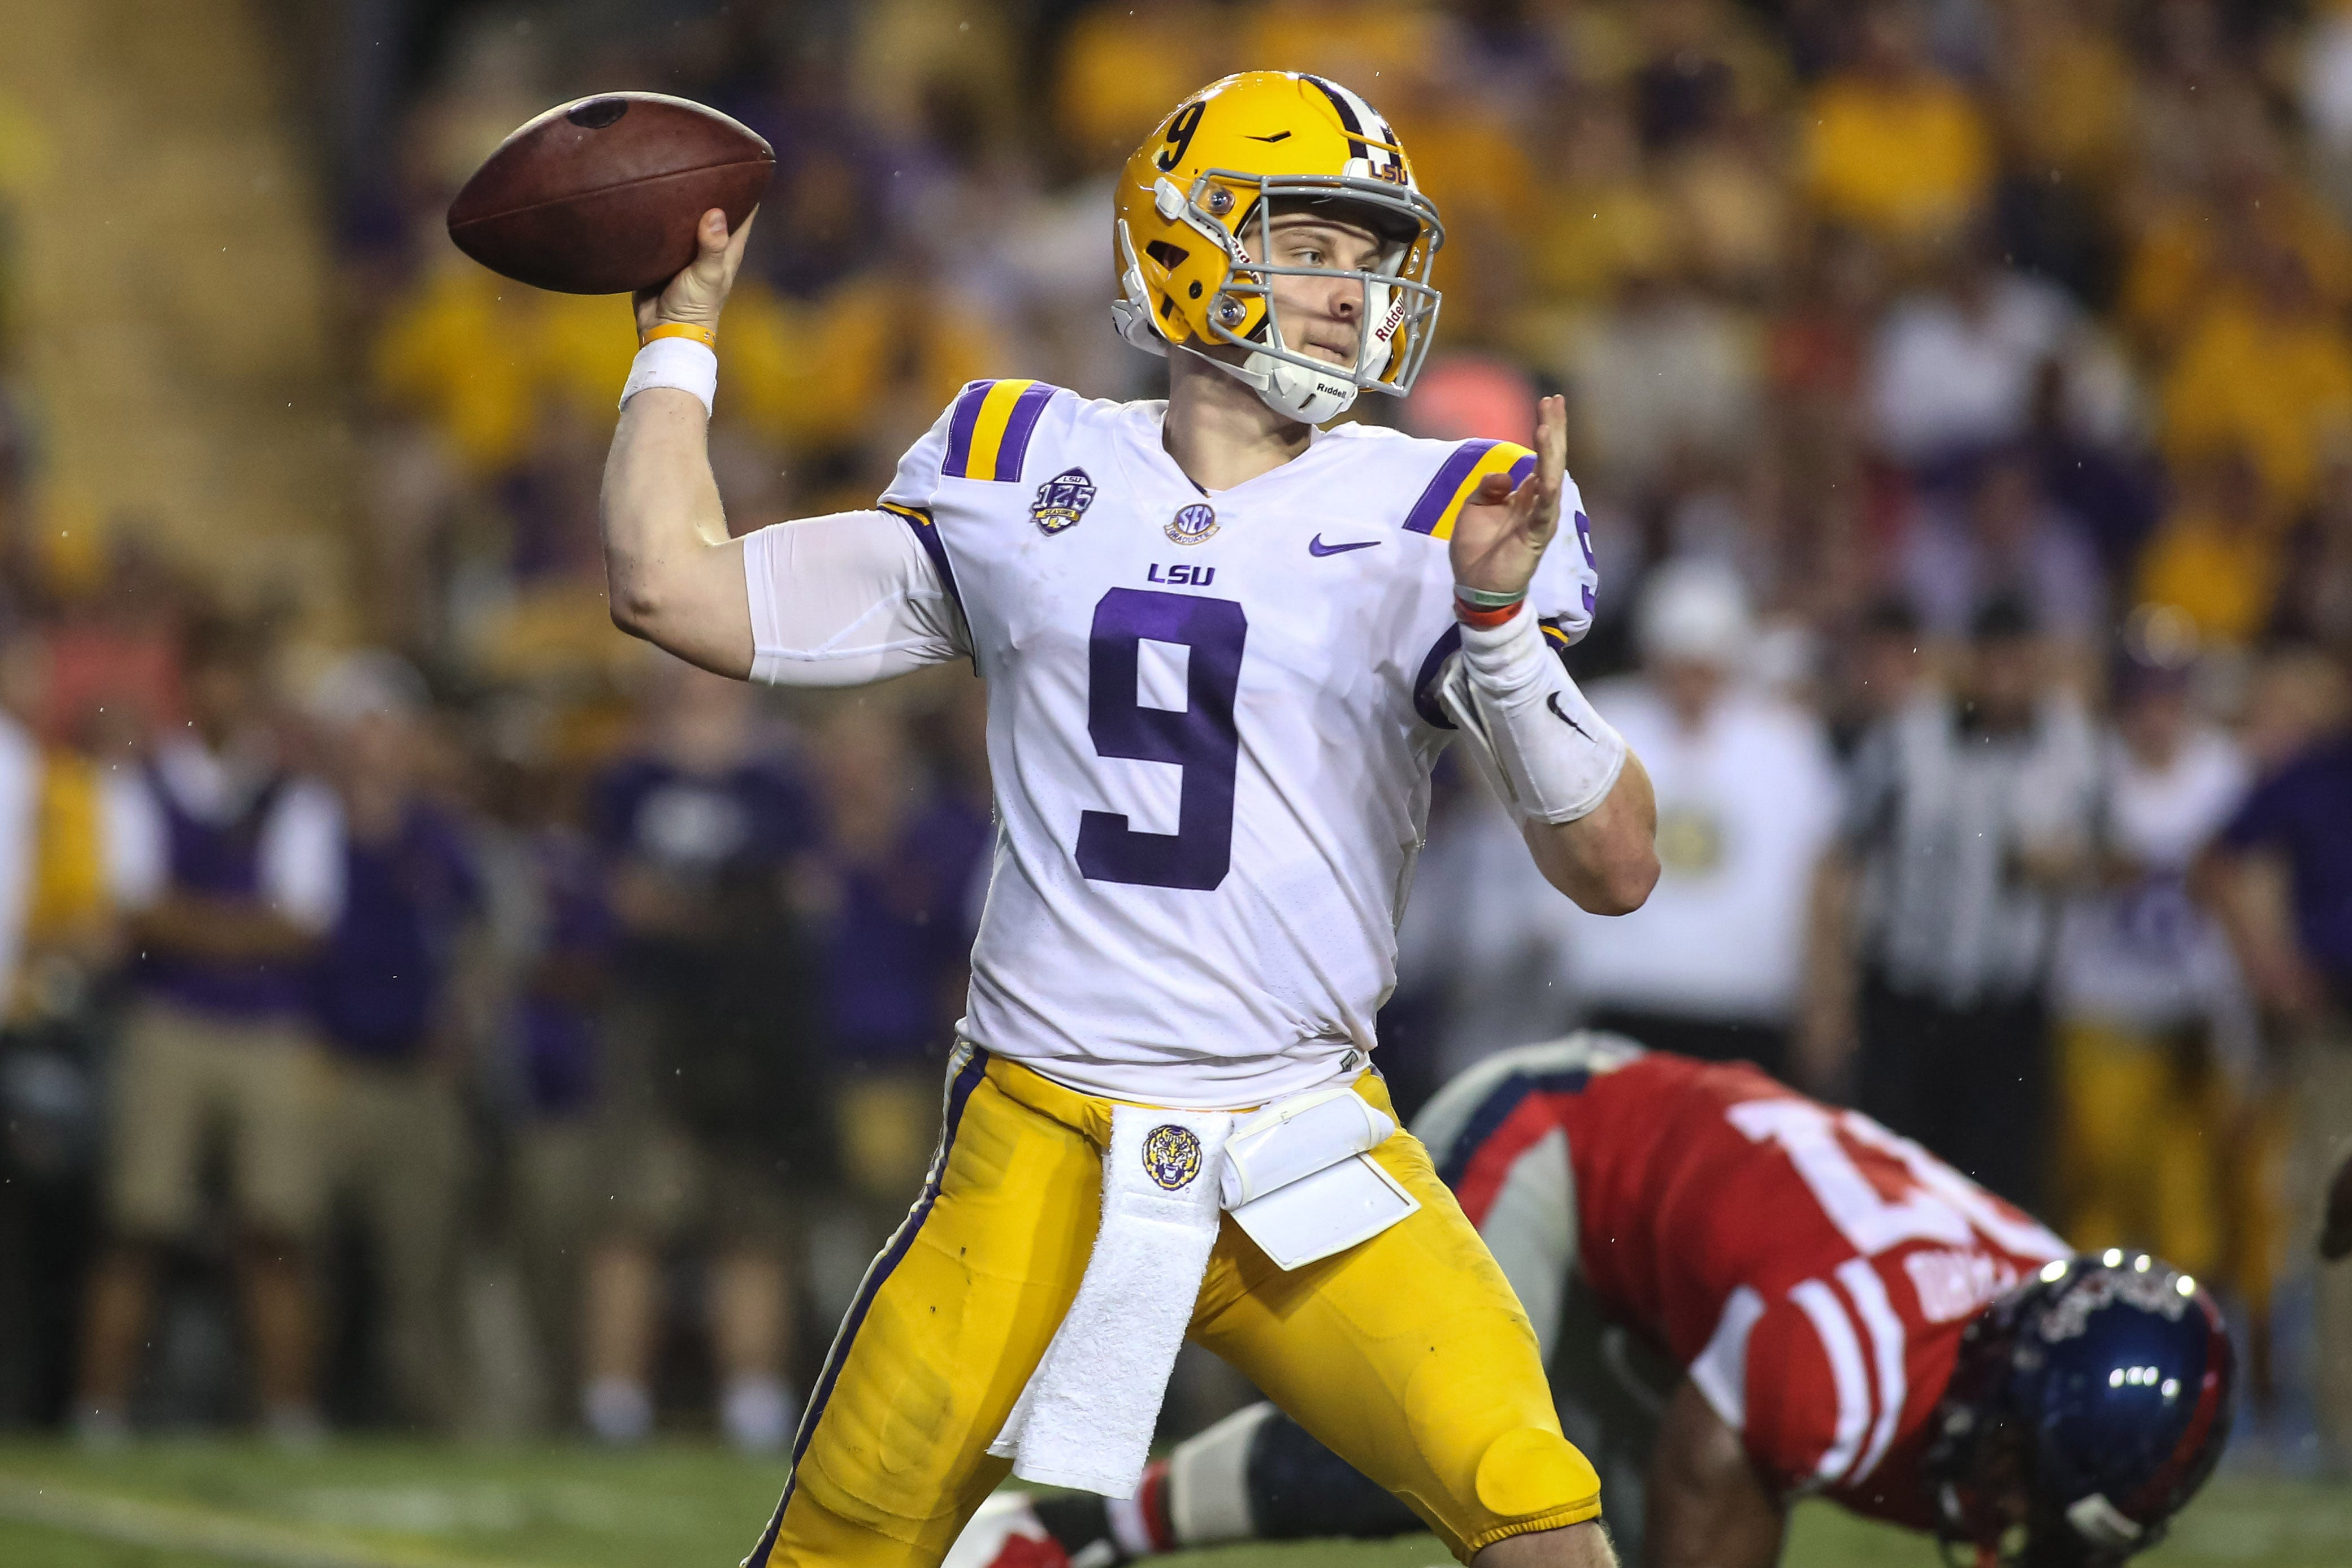 reputable site df9f1 58d17 Tigers This Week: LSU to beat Florida